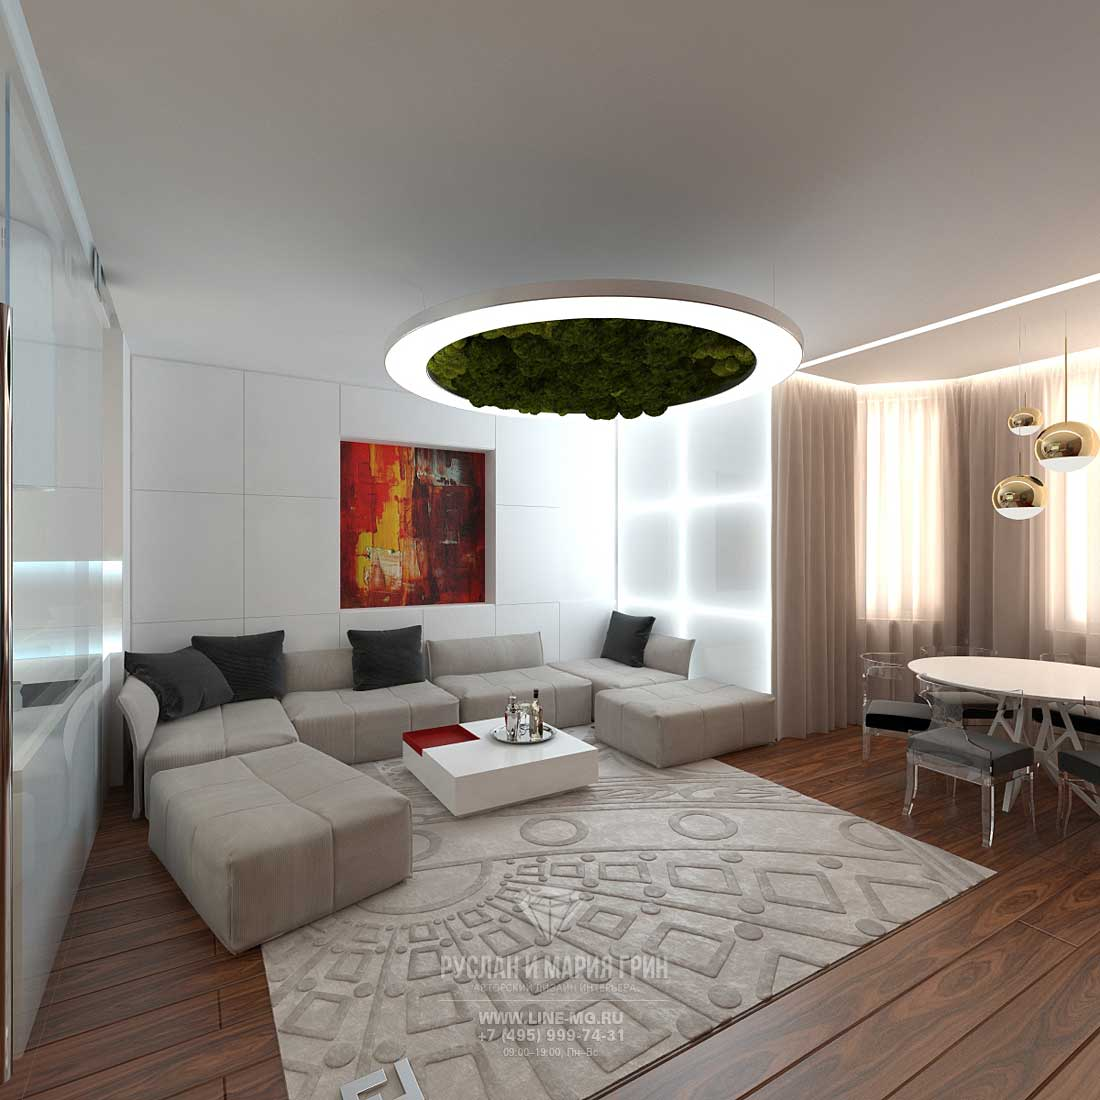 Design of the living room in an apartment for a young man